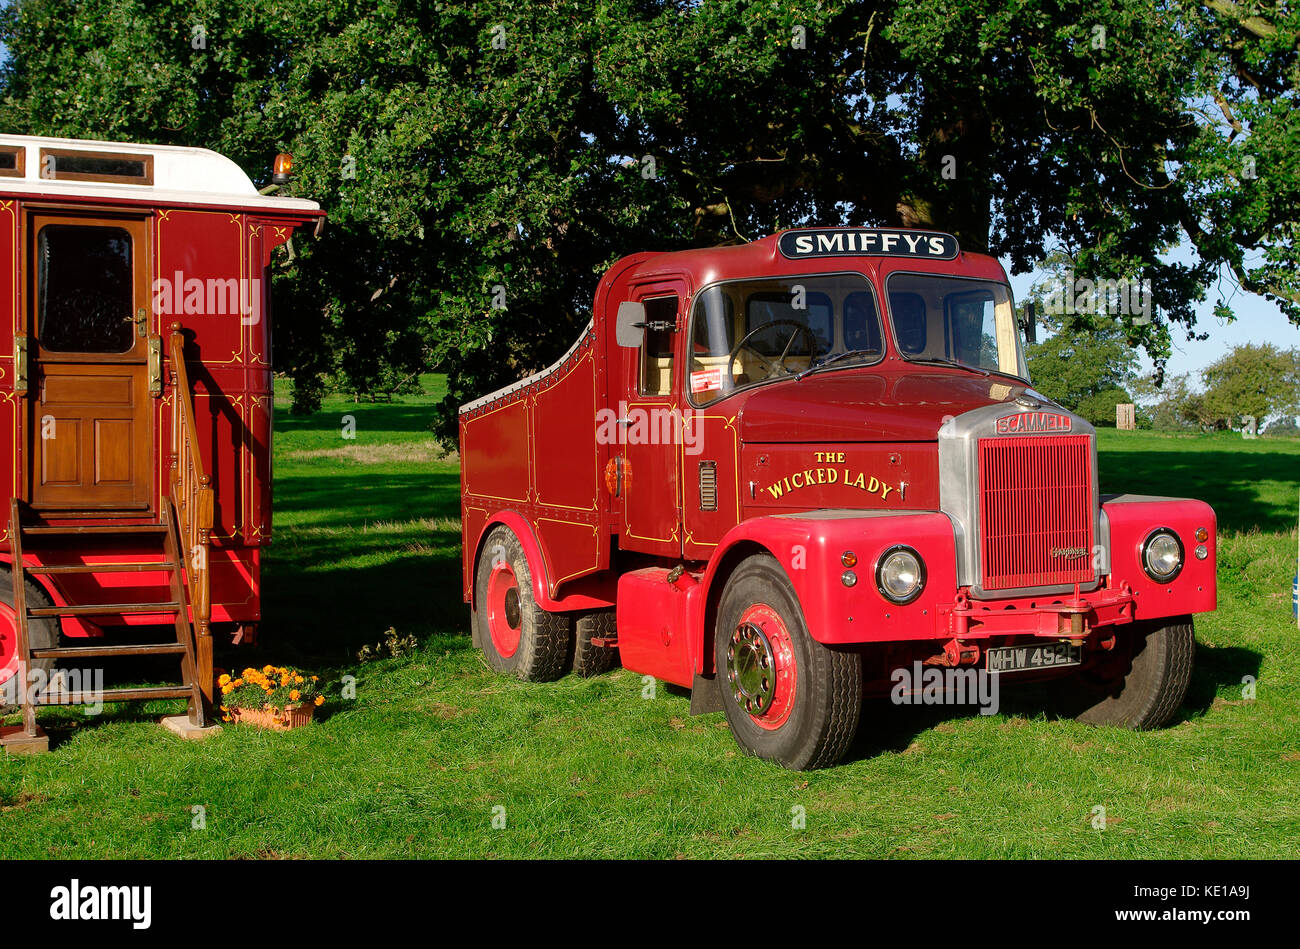 1967 Scammell Highwayman ballast tractor - Stock Image